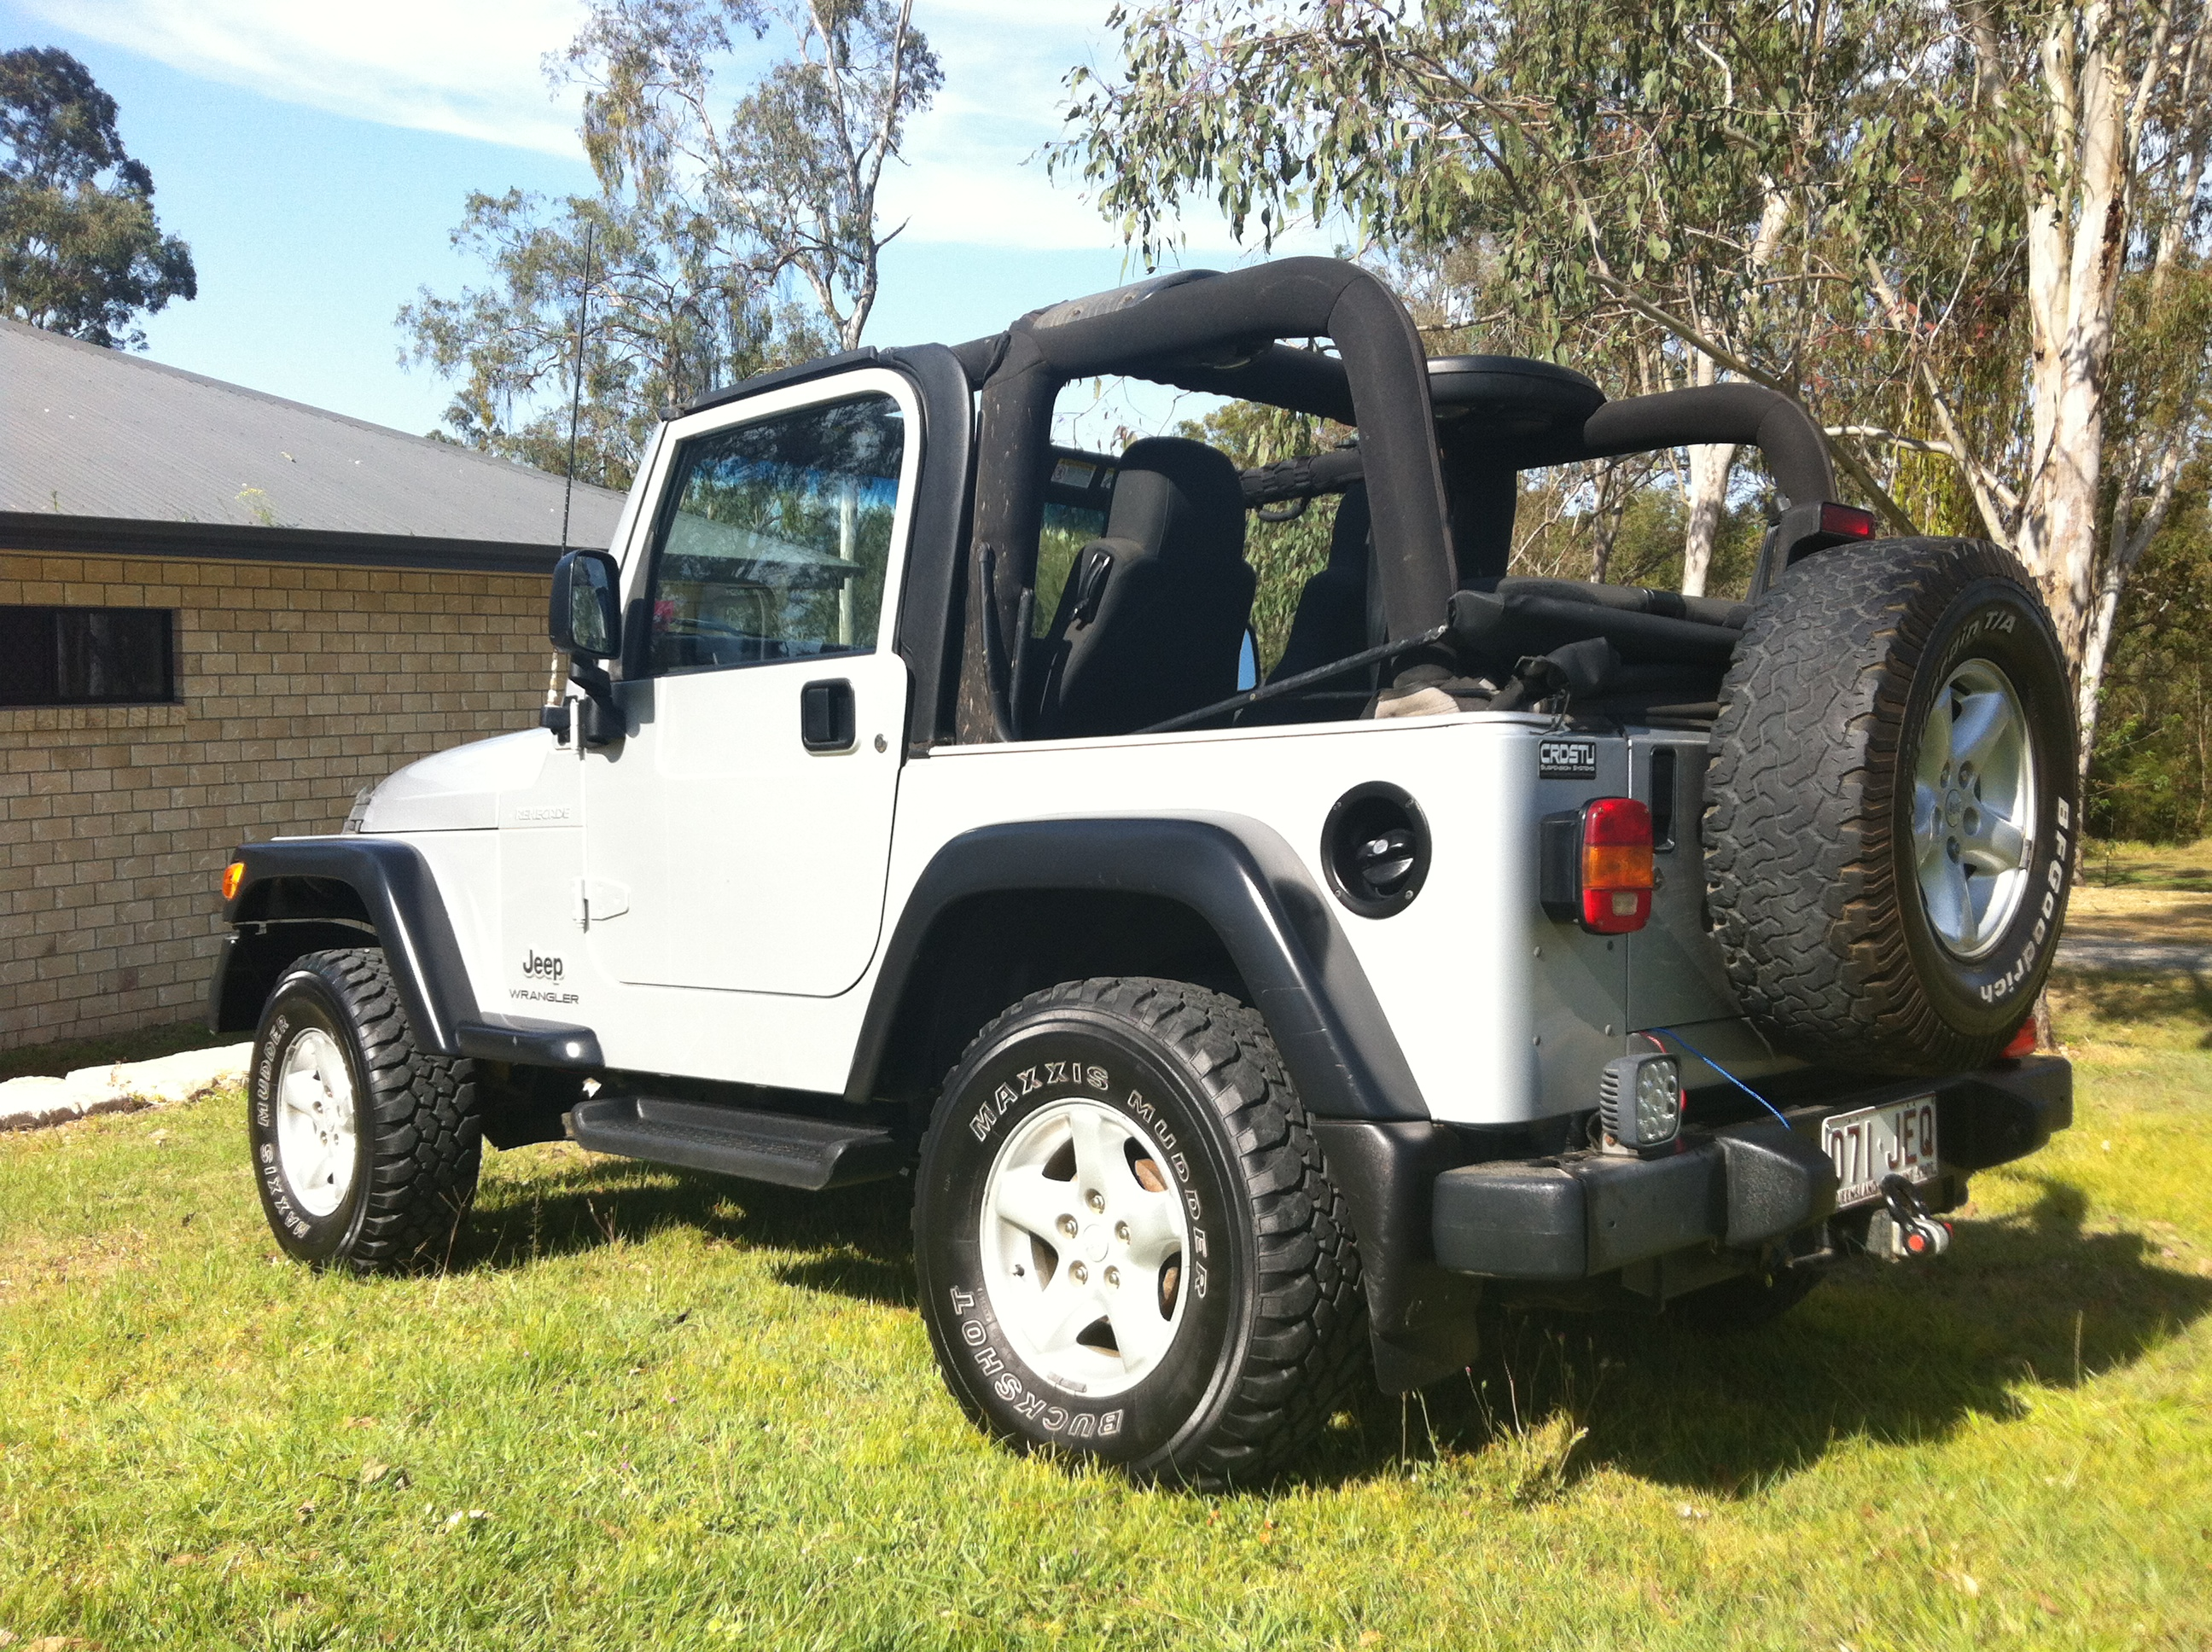 1995 jeep wrangler for sale 4 days ago for sale by owner trenton nj sexy girl and car photos. Black Bedroom Furniture Sets. Home Design Ideas